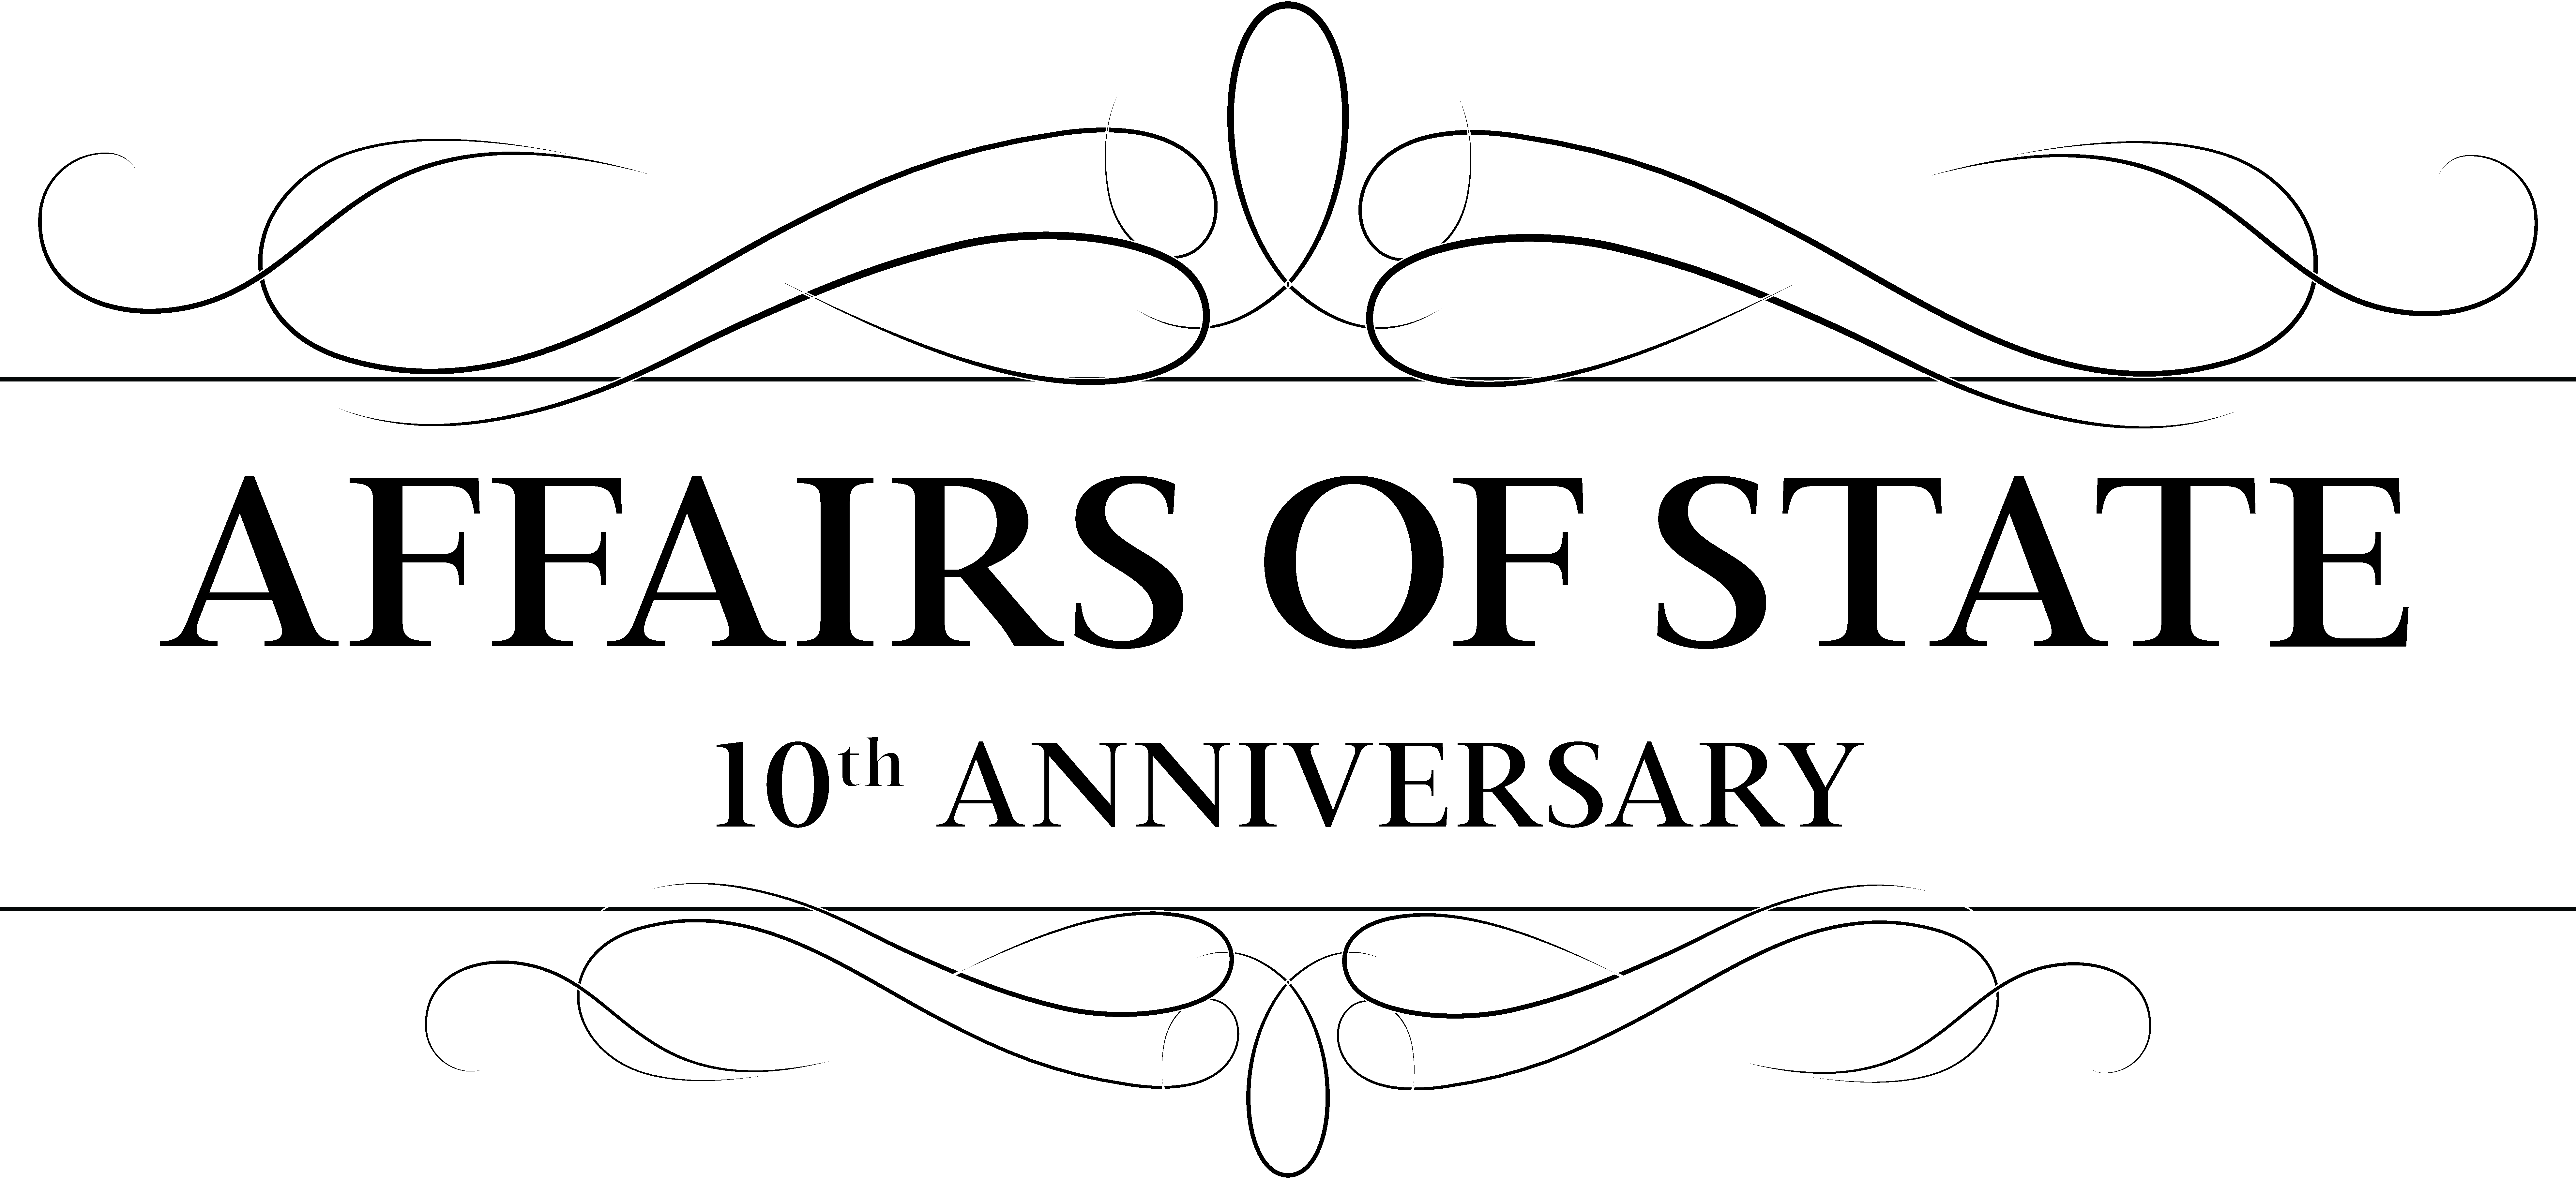 Affairs_of_State_Logo_10.png